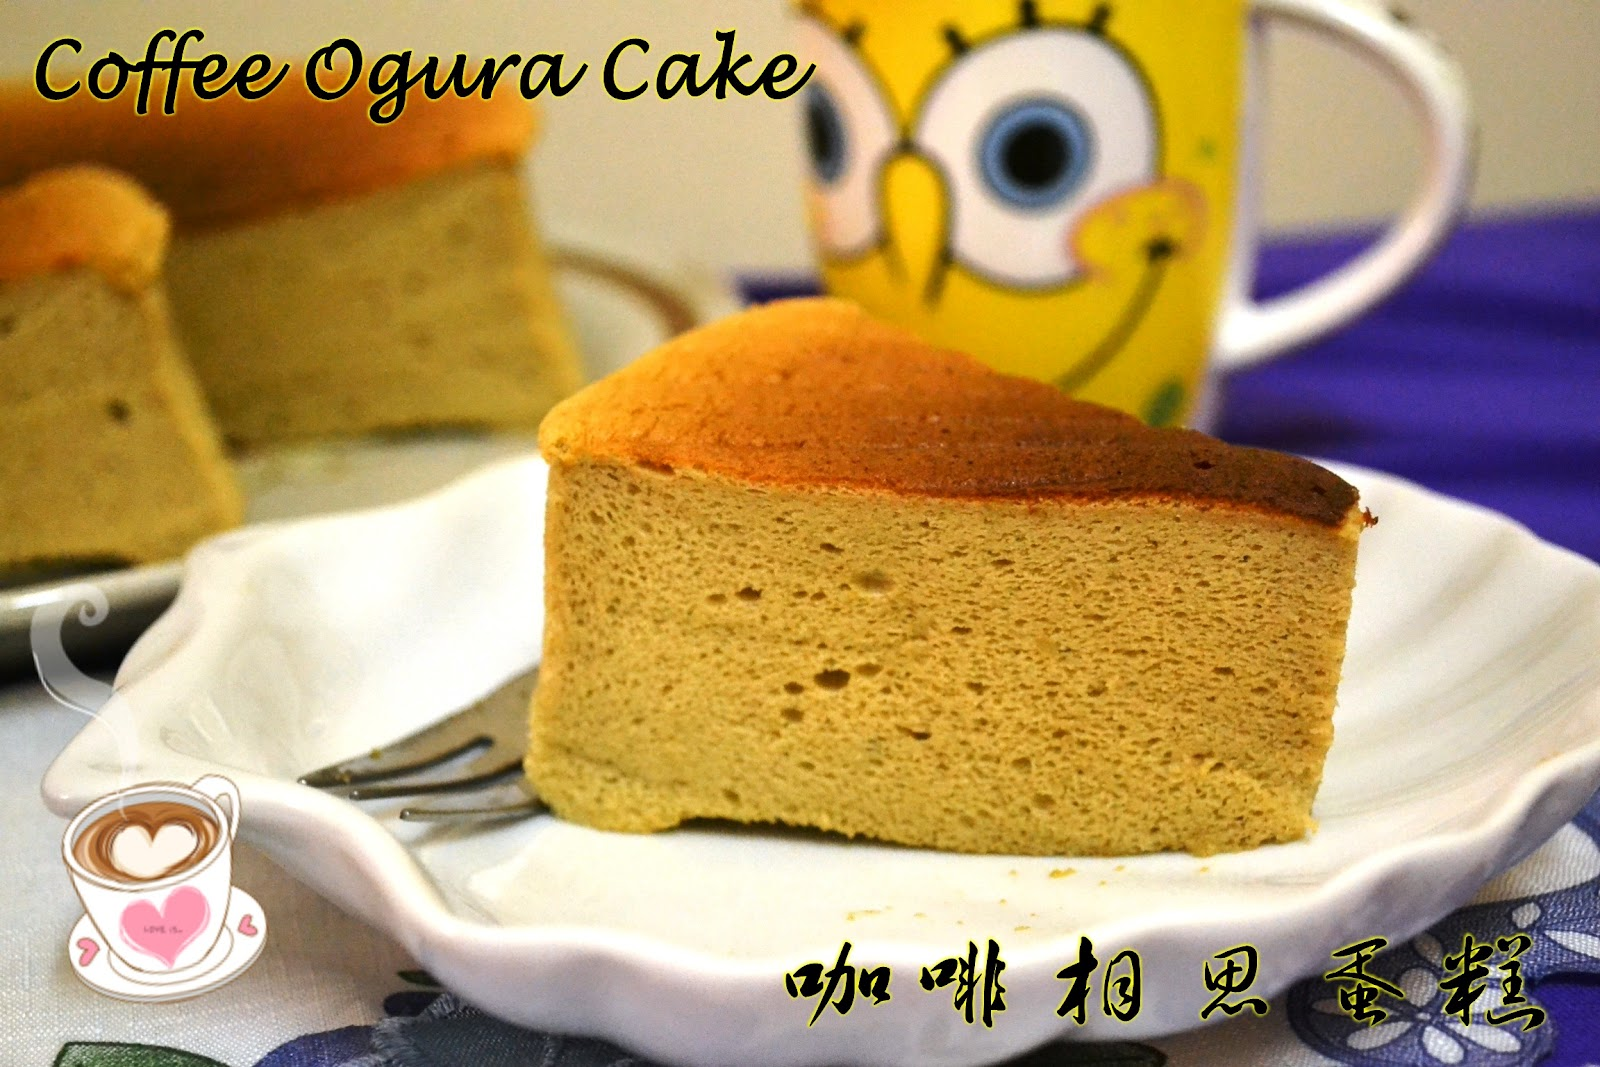 Food Home Sweet Home Japanese Coffee Agura Cake 咖啡相思蛋糕